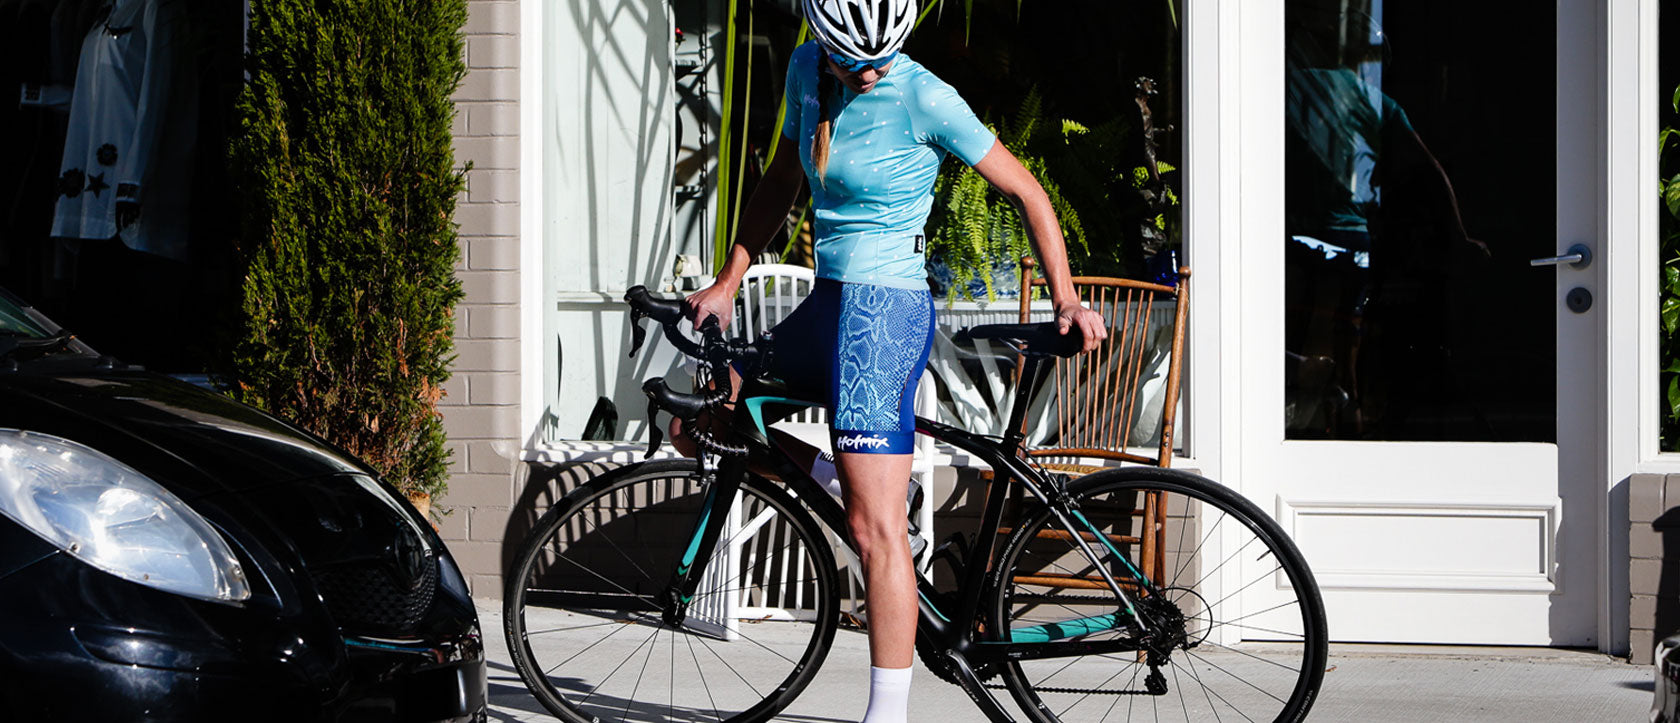 New arrival women's cycling kit.